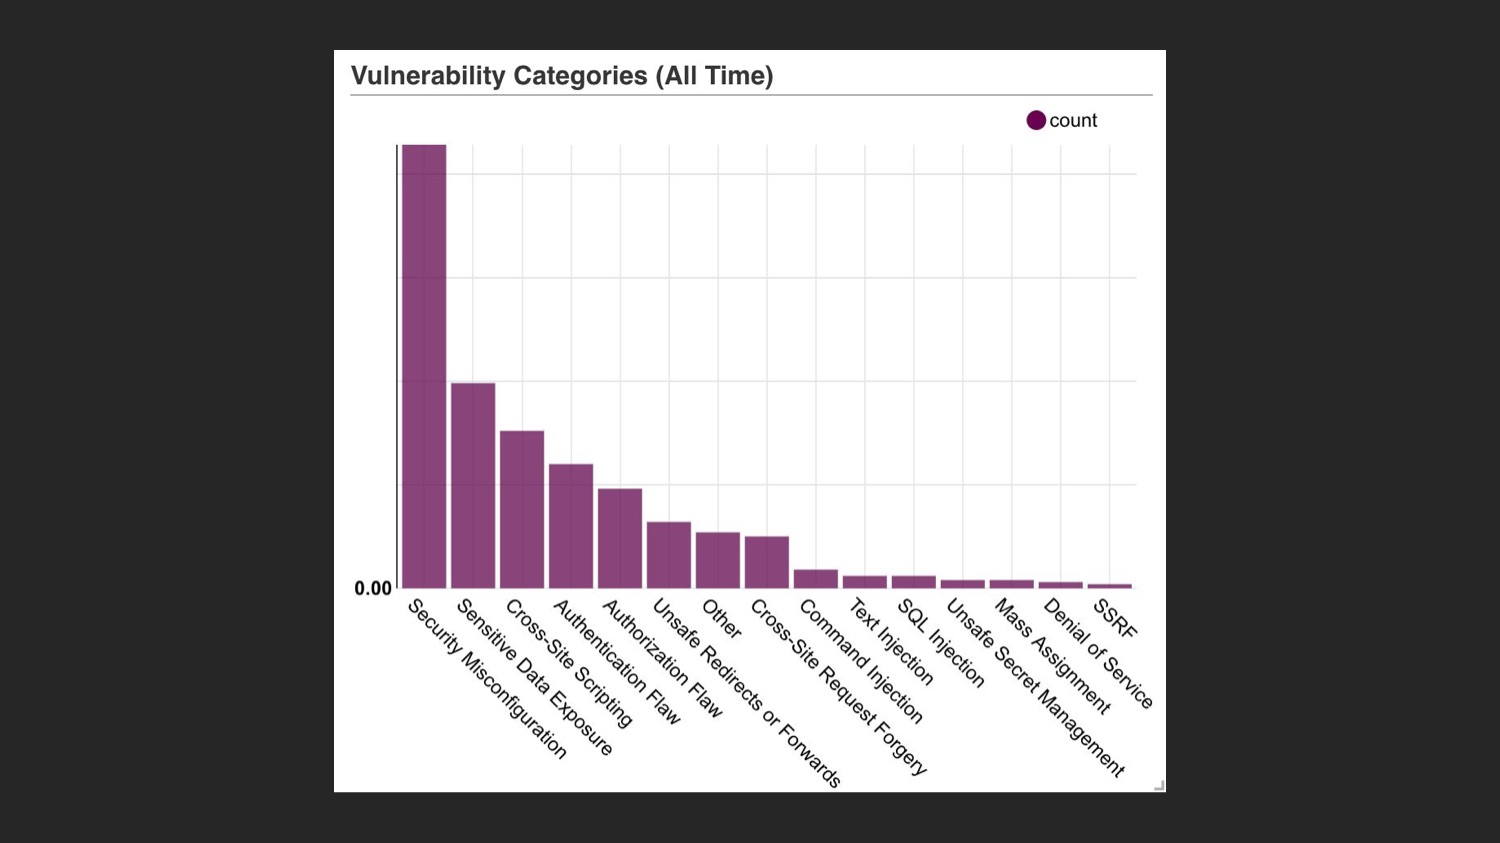 Vulnerability Categories All Time